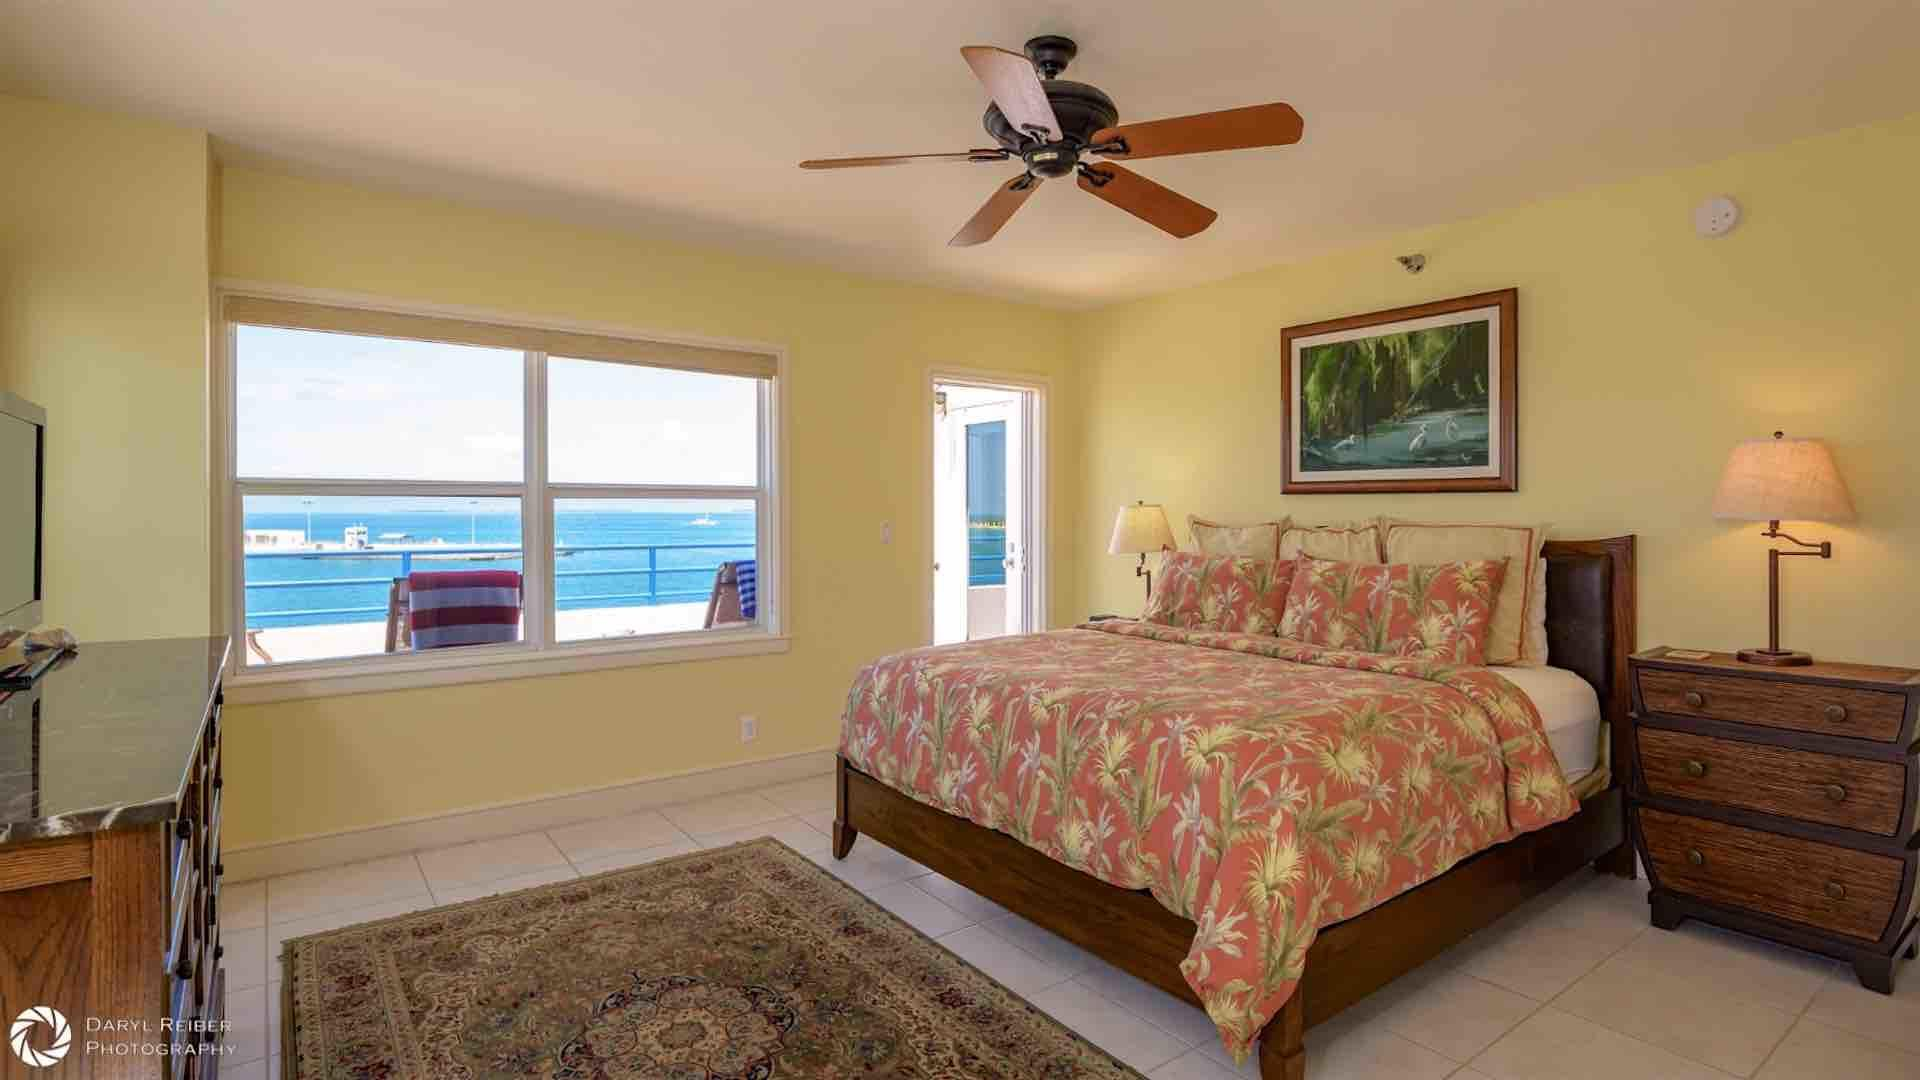 The master bedroom has a King bed and balcony access...